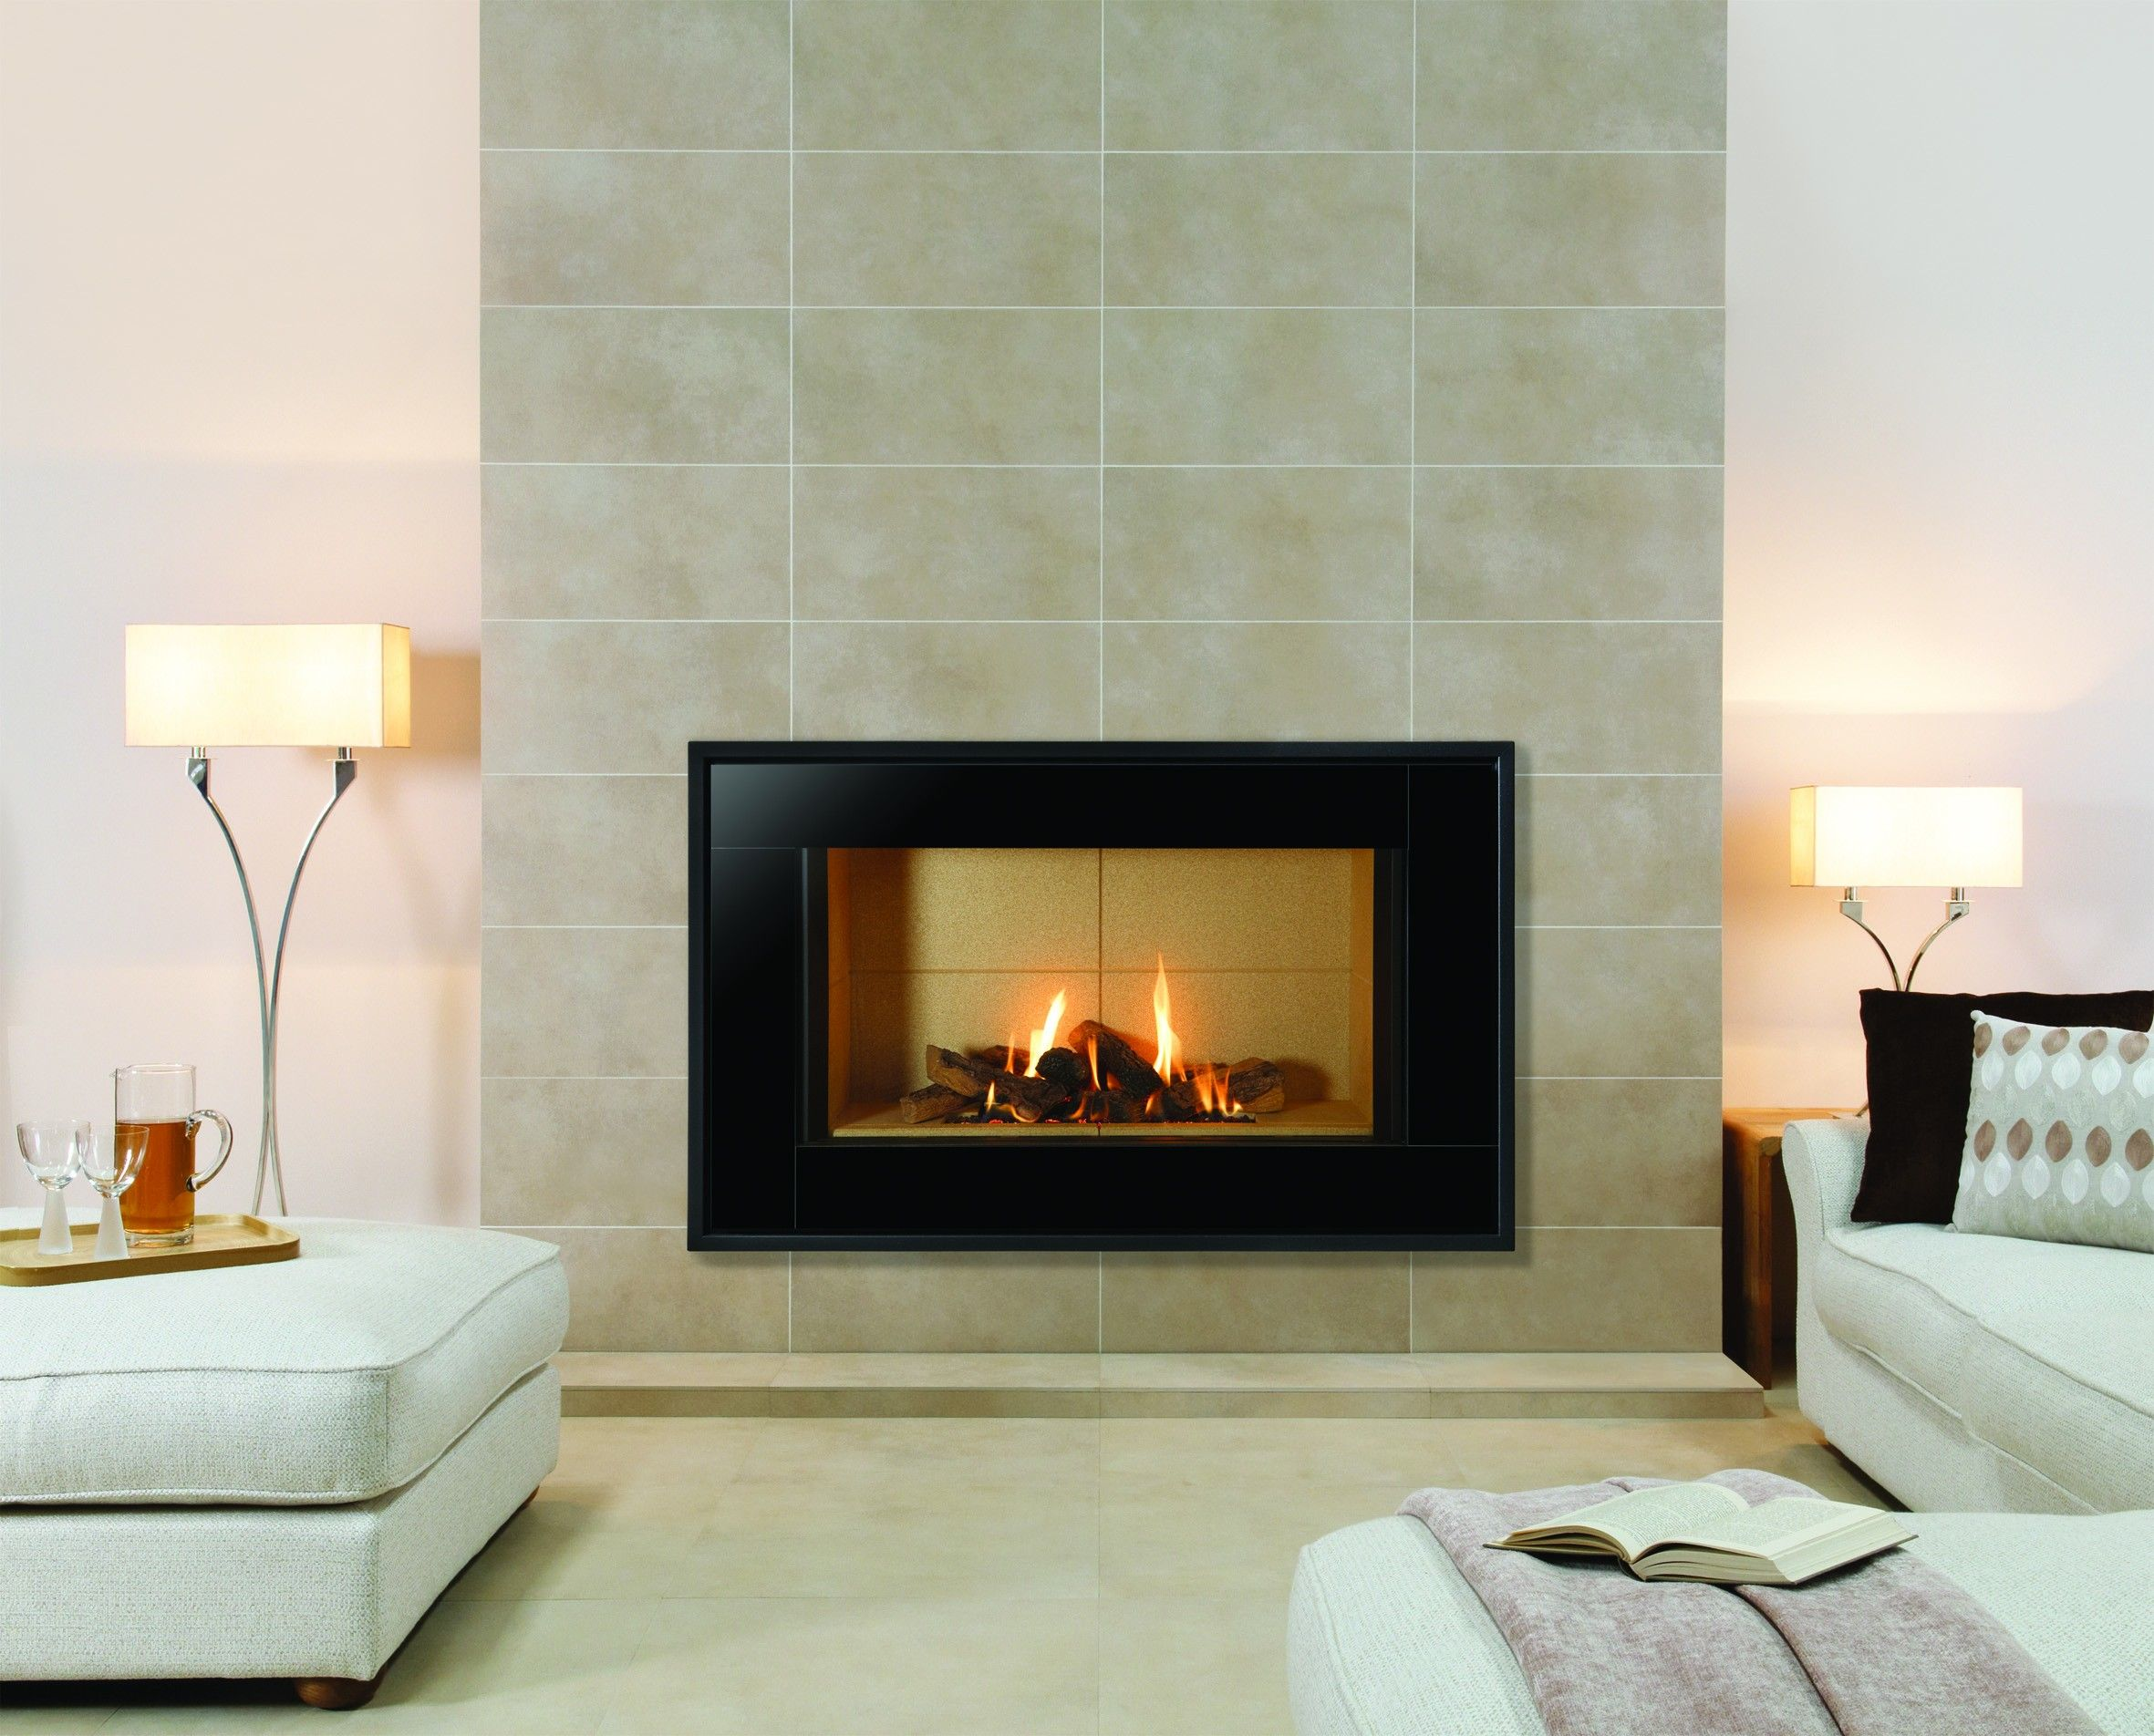 Decoration Cool Modern Stylish Living Room With Minimalist Gas Fireplace Black Frames And Slate